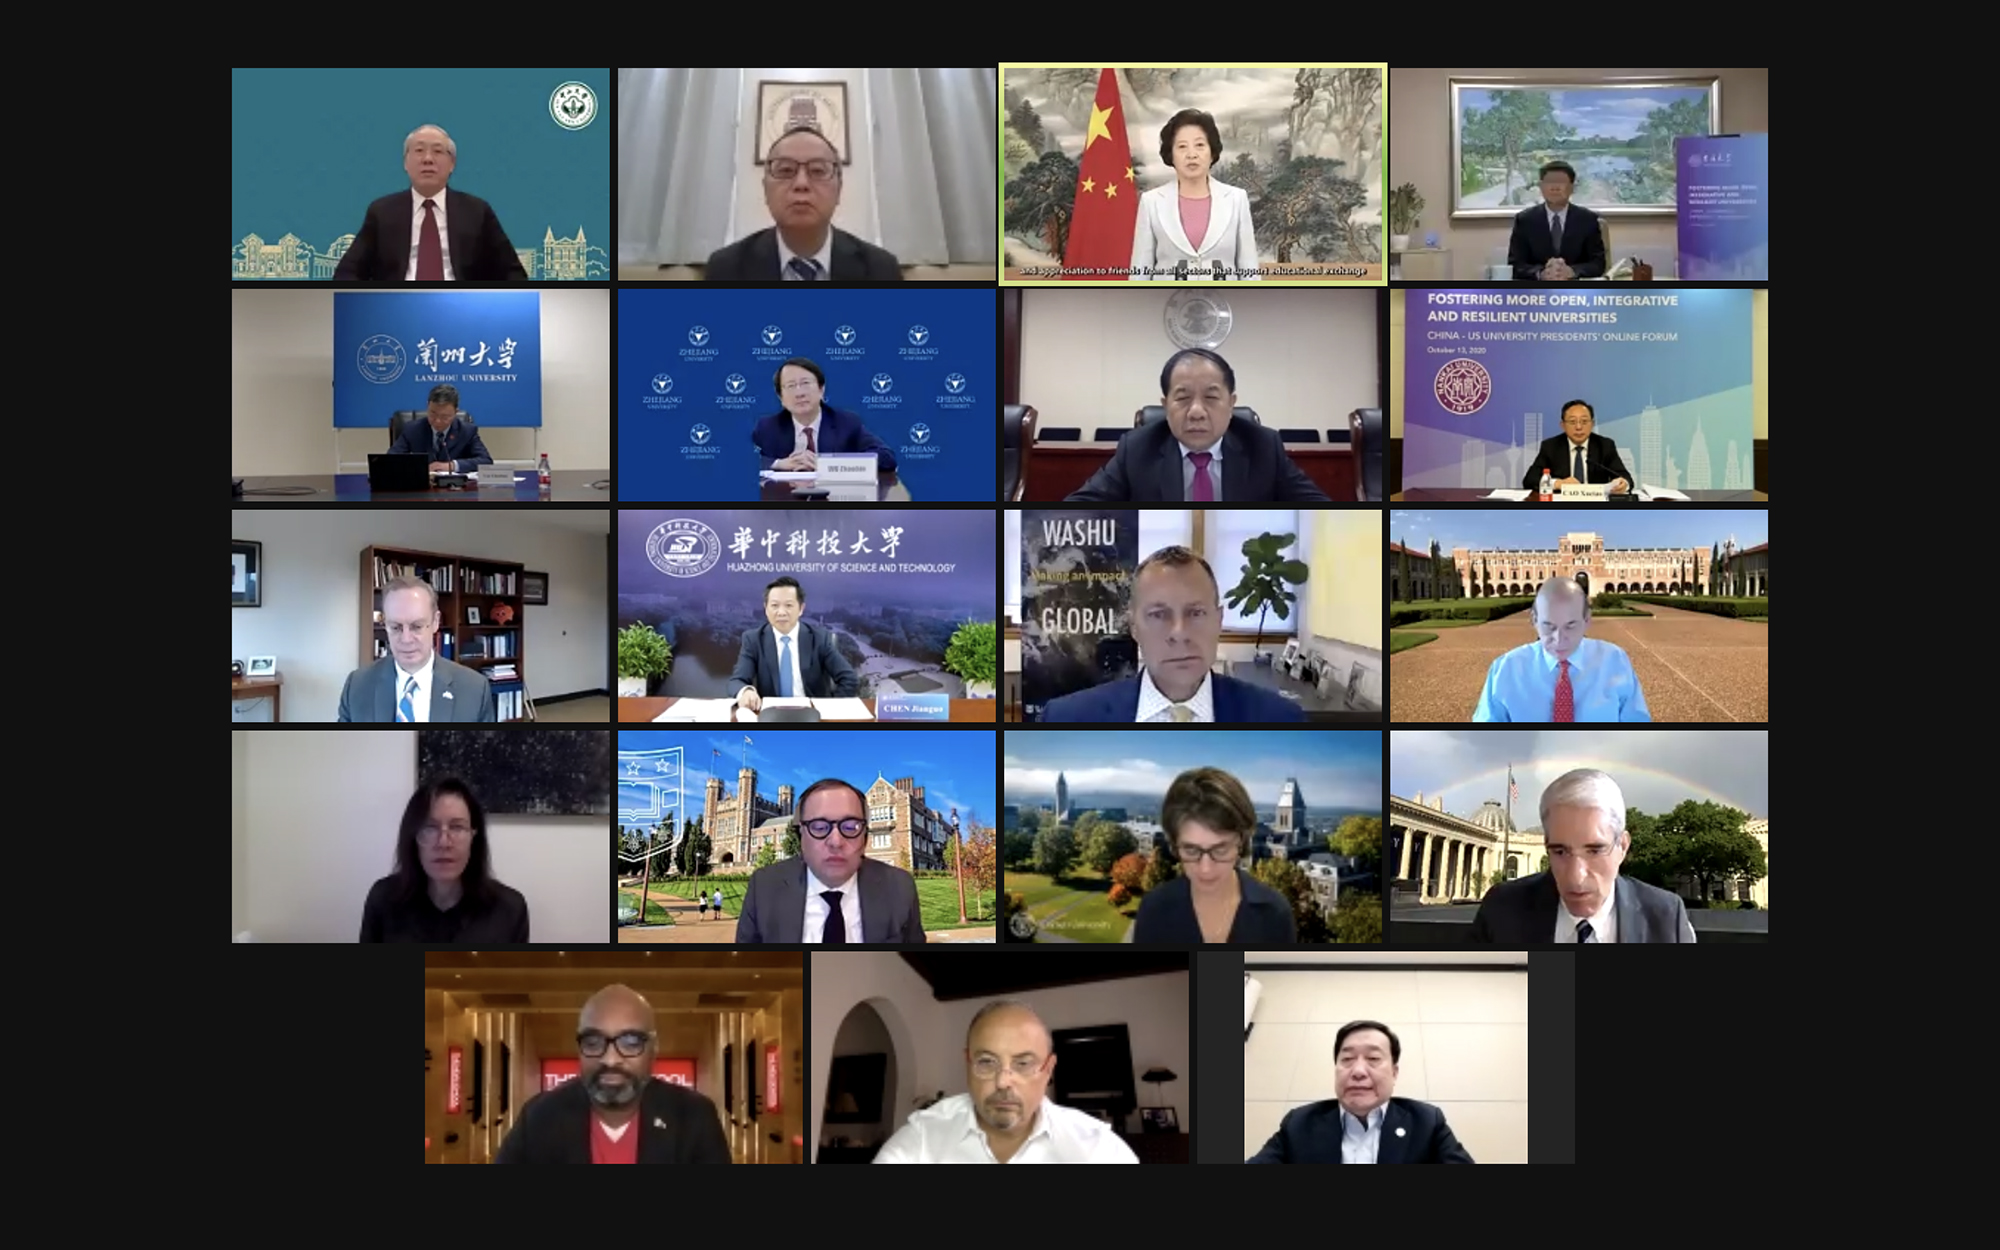 UM rector and 19 university presidents participate in the China-US University Presidents' Online Forum